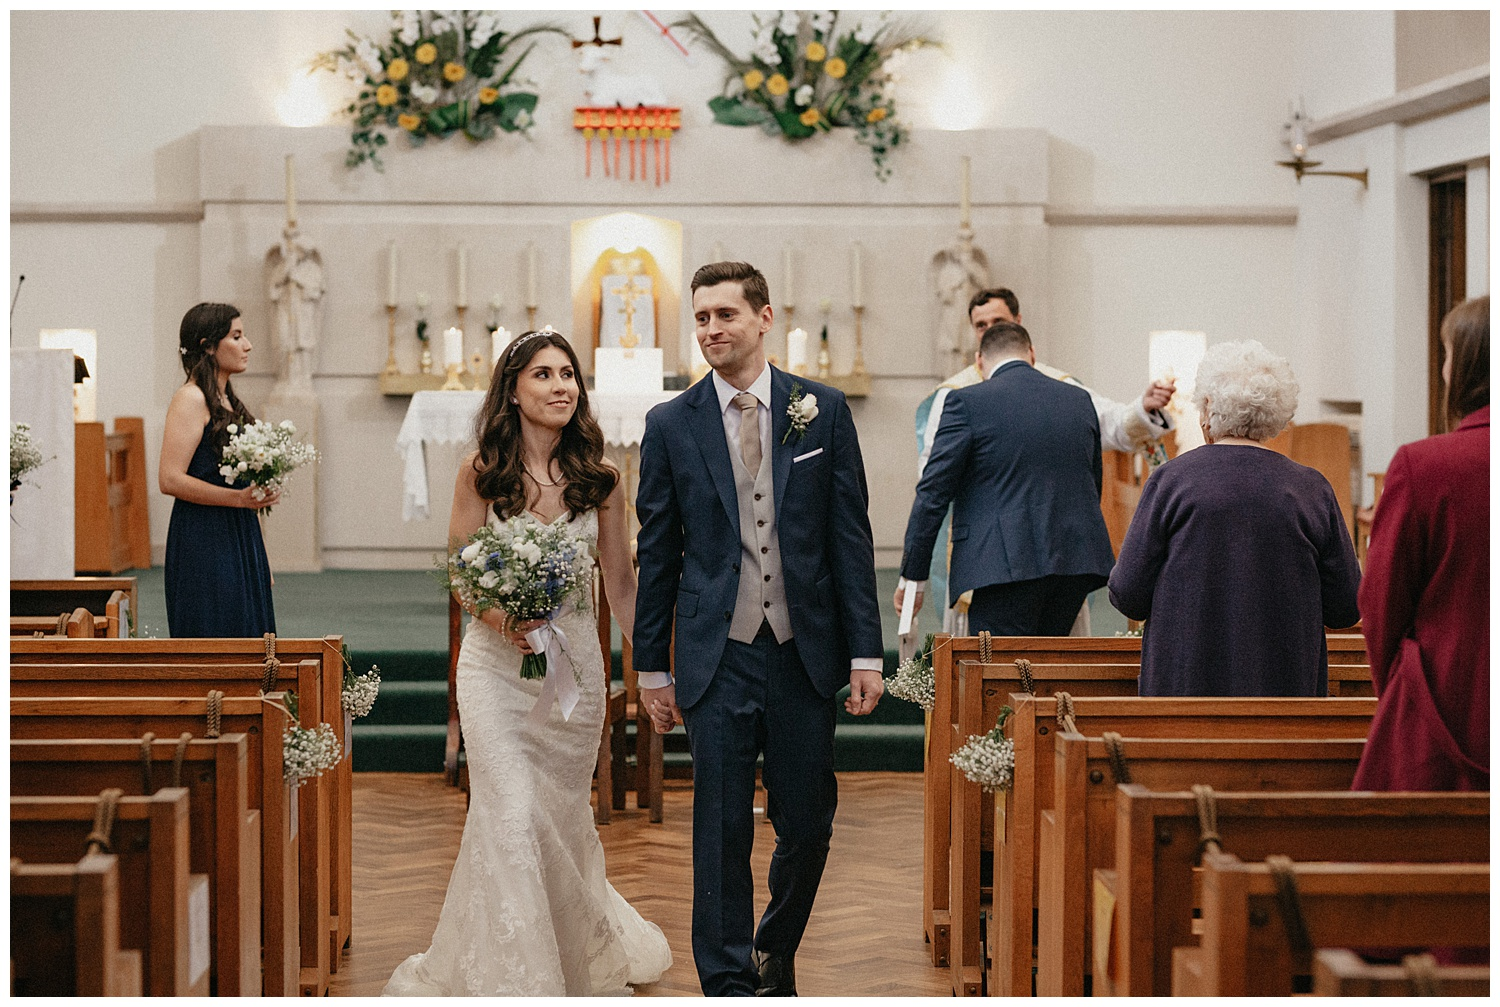 Wedding at Foxhills, Surrey Wedding Photographer - bride and groom walking down the aisle